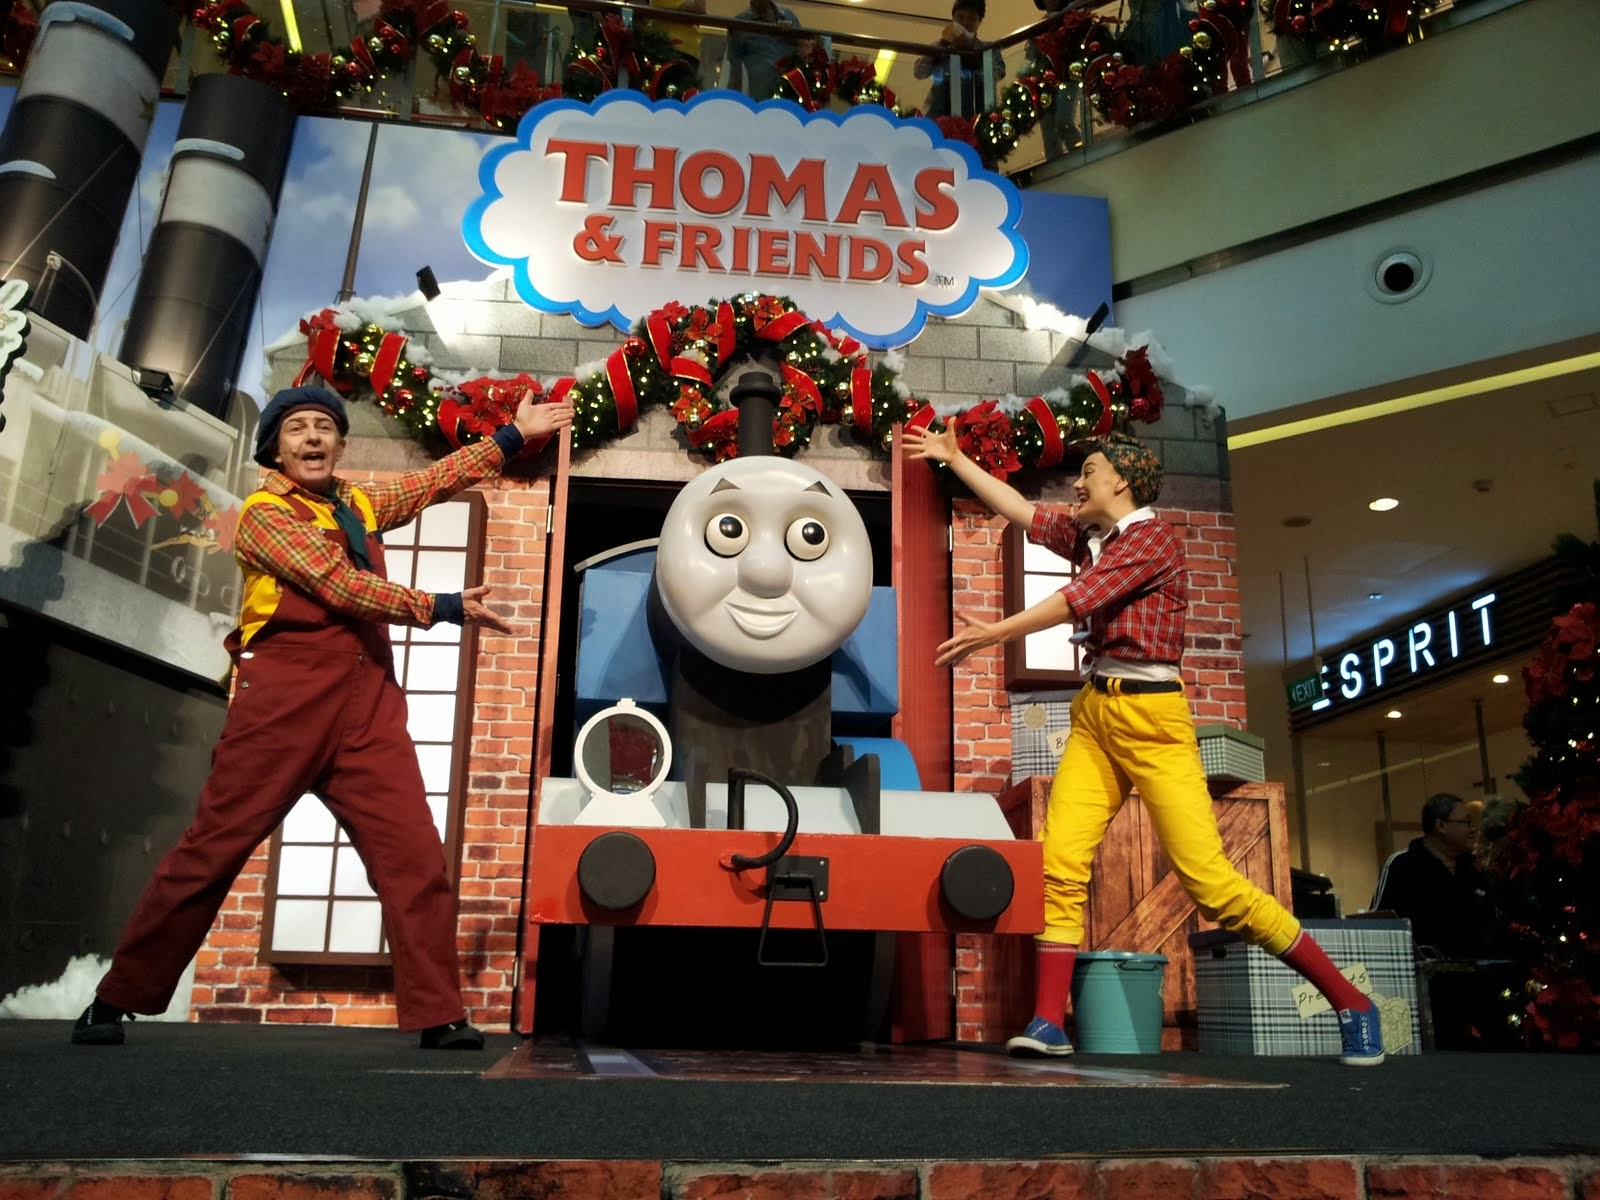 Thomas & Friends Live Show!